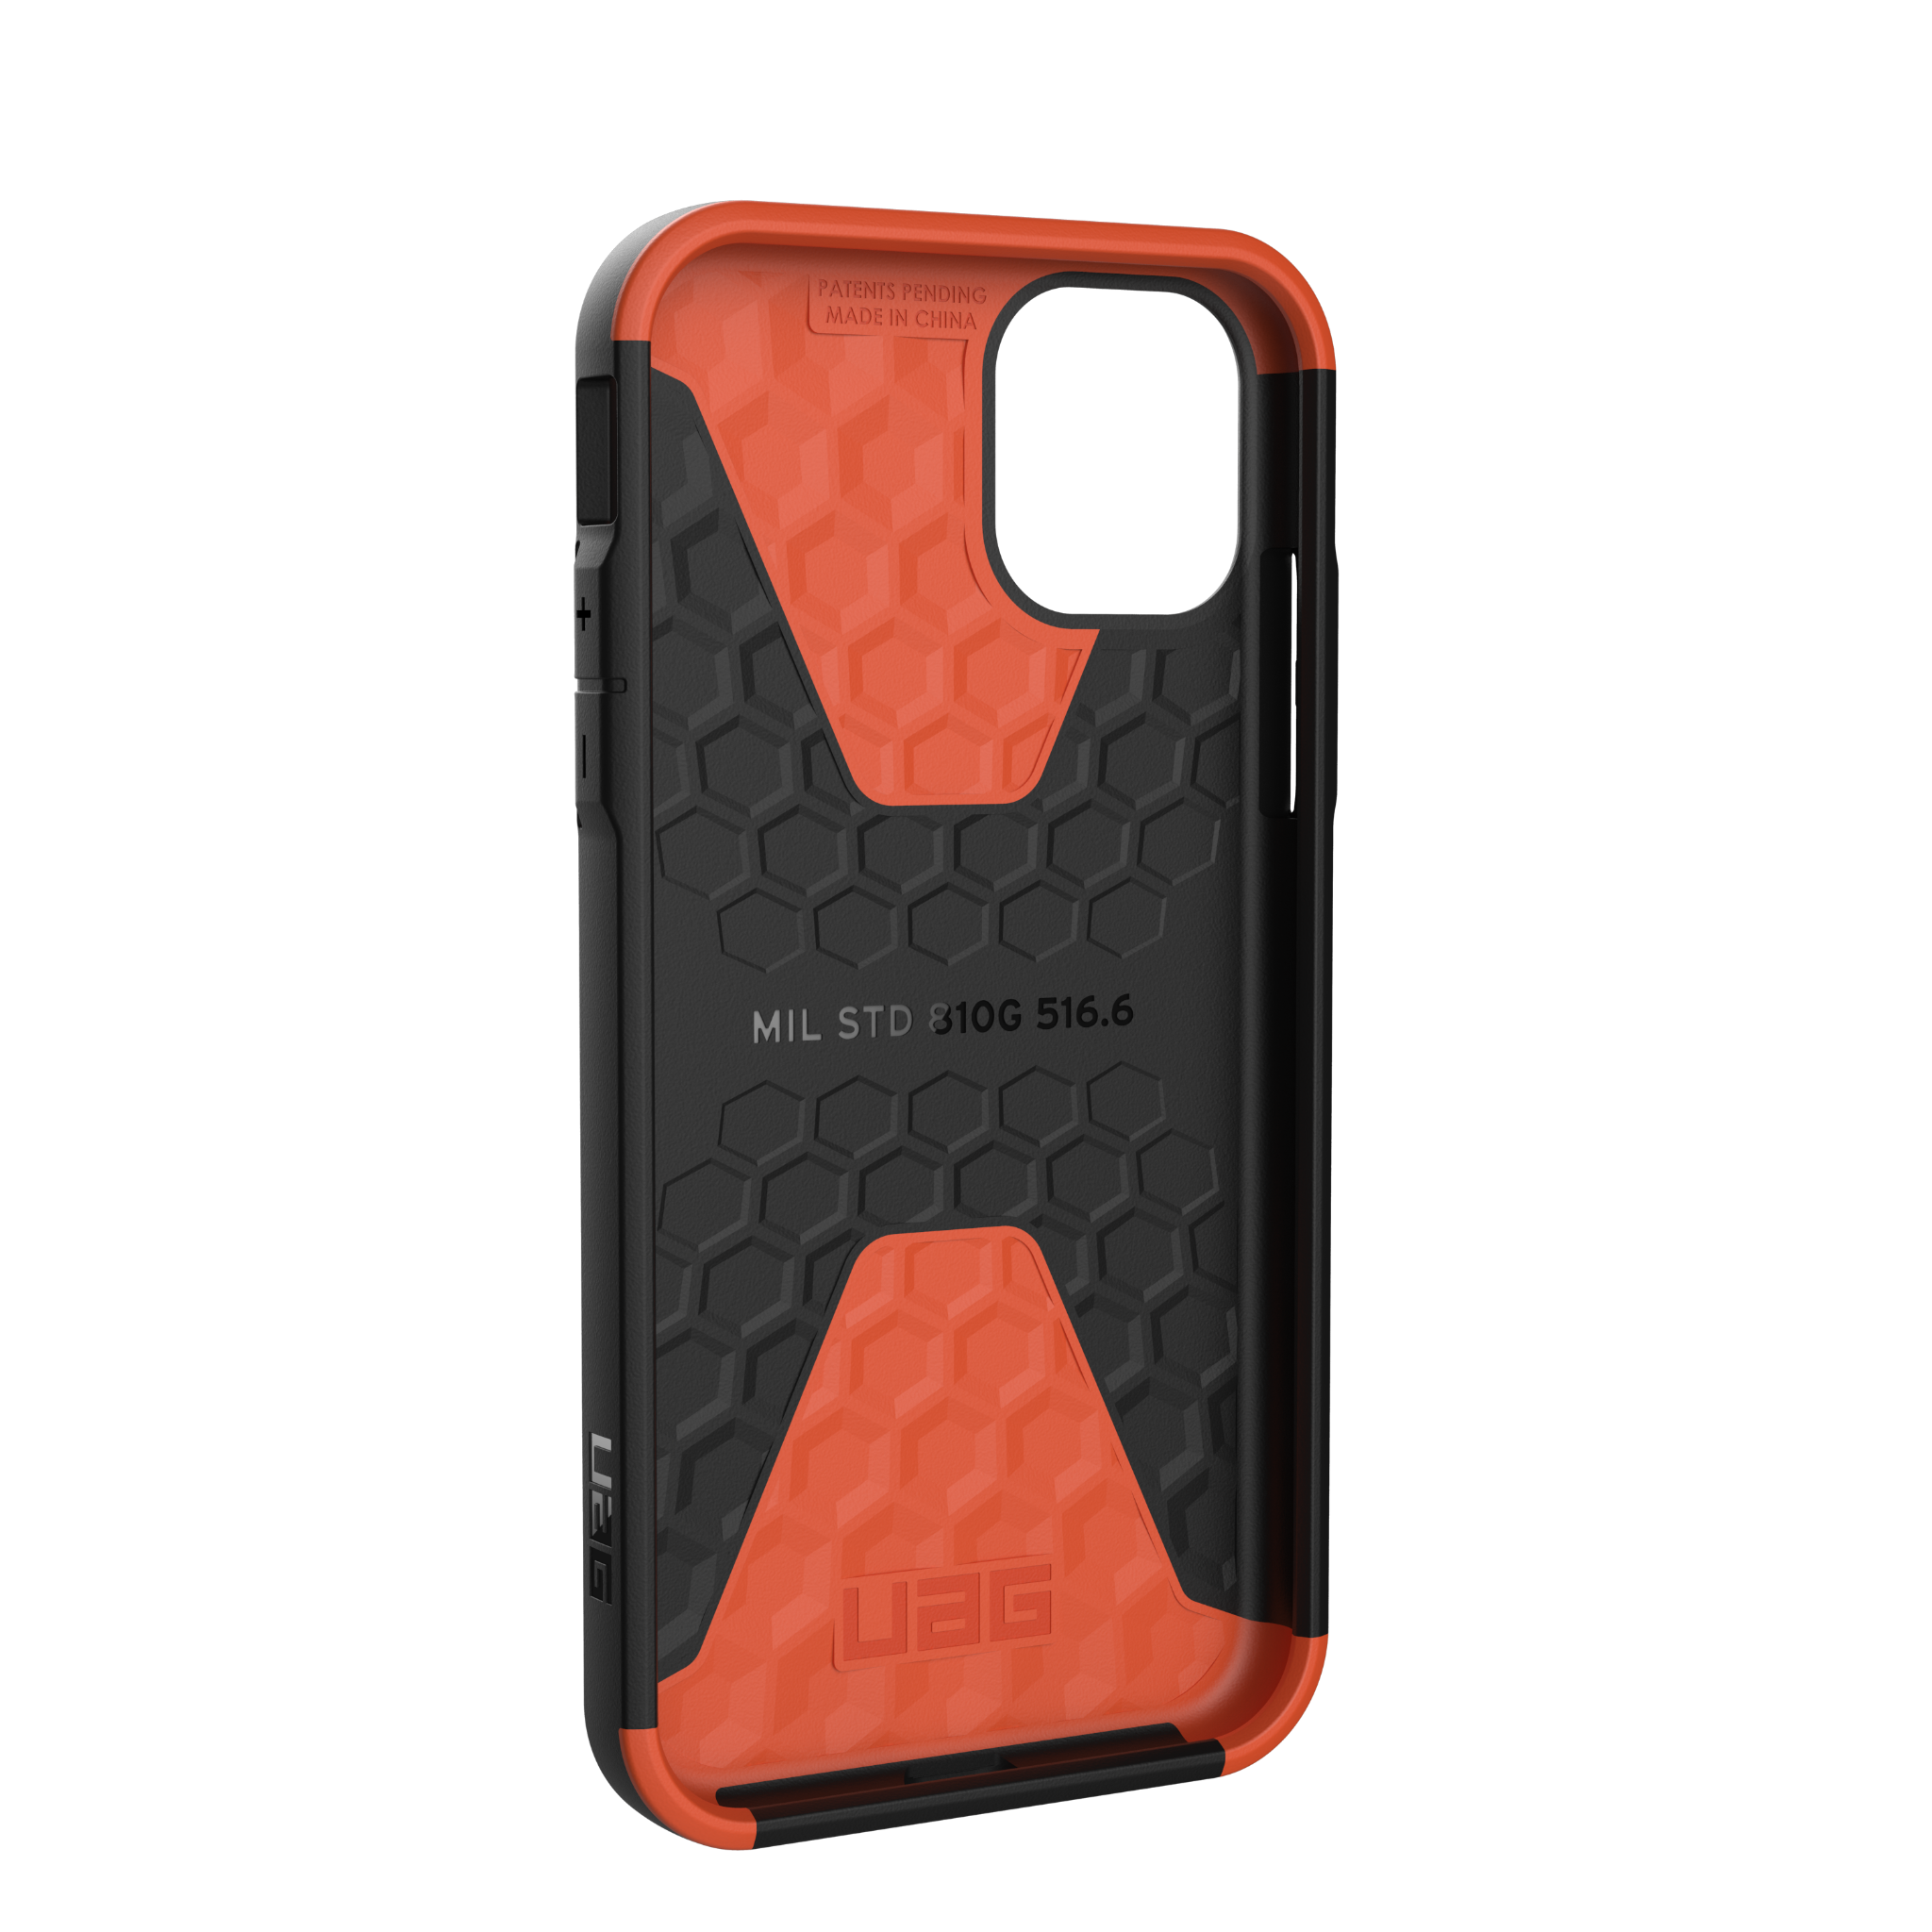 ỐP LƯNG UAG CIVILIAN CHO IPHONE 11 [6.1-INCH] - Black